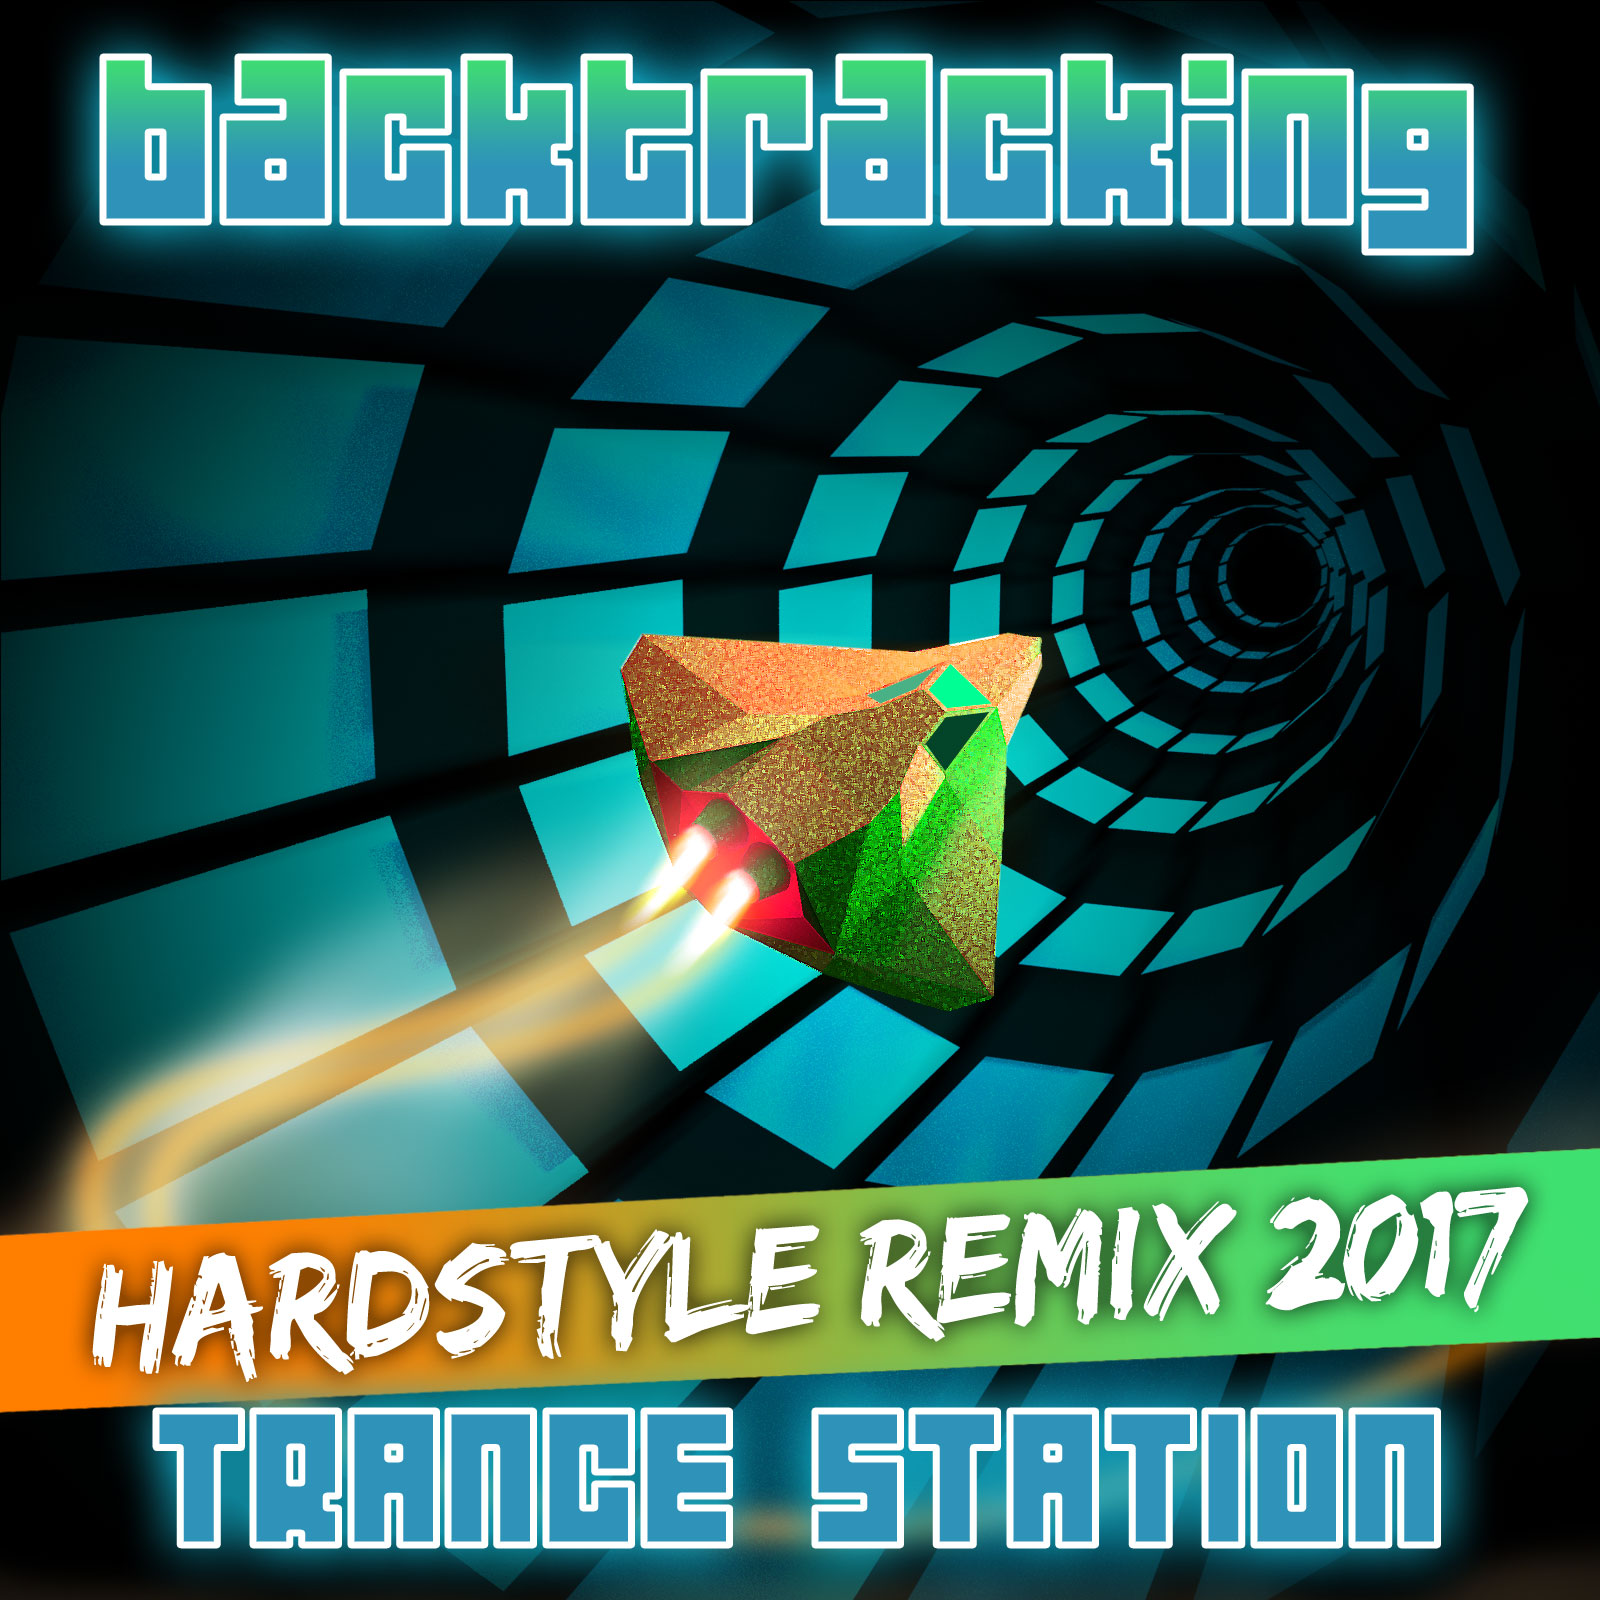 Trance Station Remix 2017